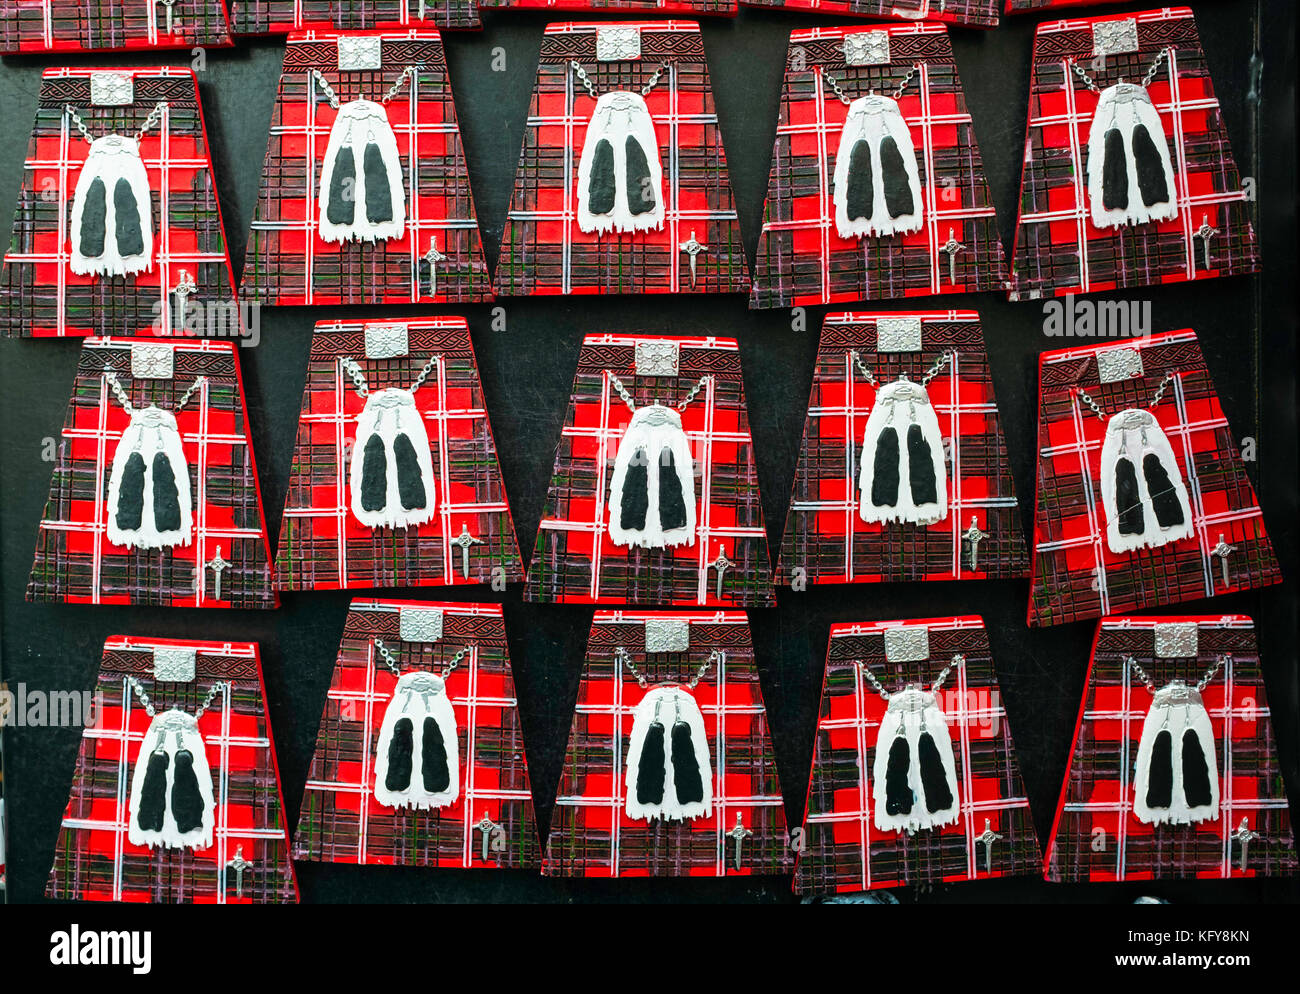 Geometric view of fridge magnets in shape of Scottish kilts for sale in tourist gift shop on the Royal Mile in Edinburgh, Stock Photo